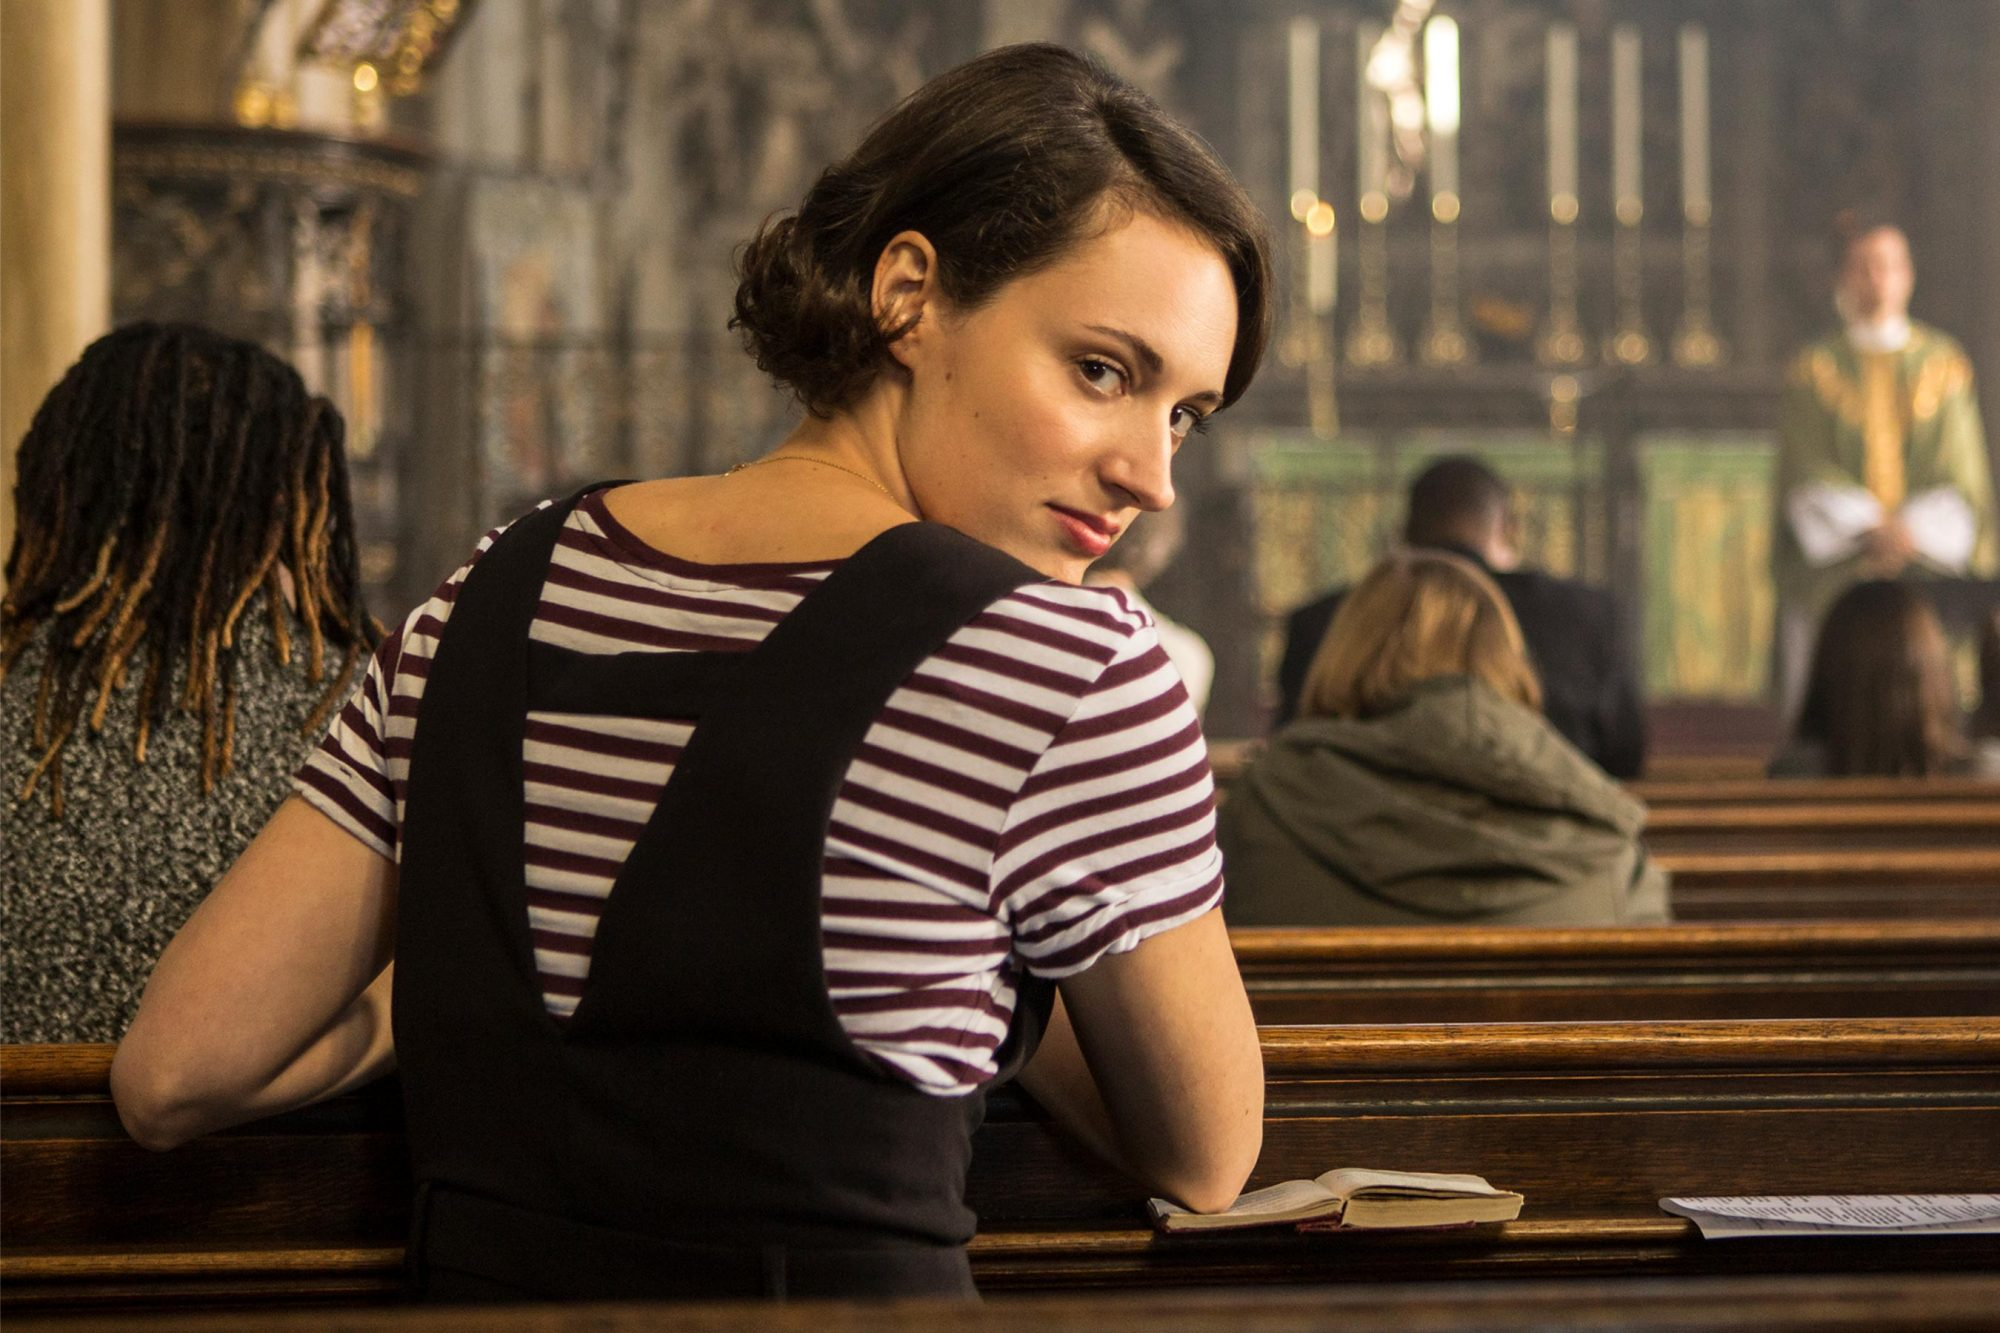 5. Fleabag (Amazon Prime Video)